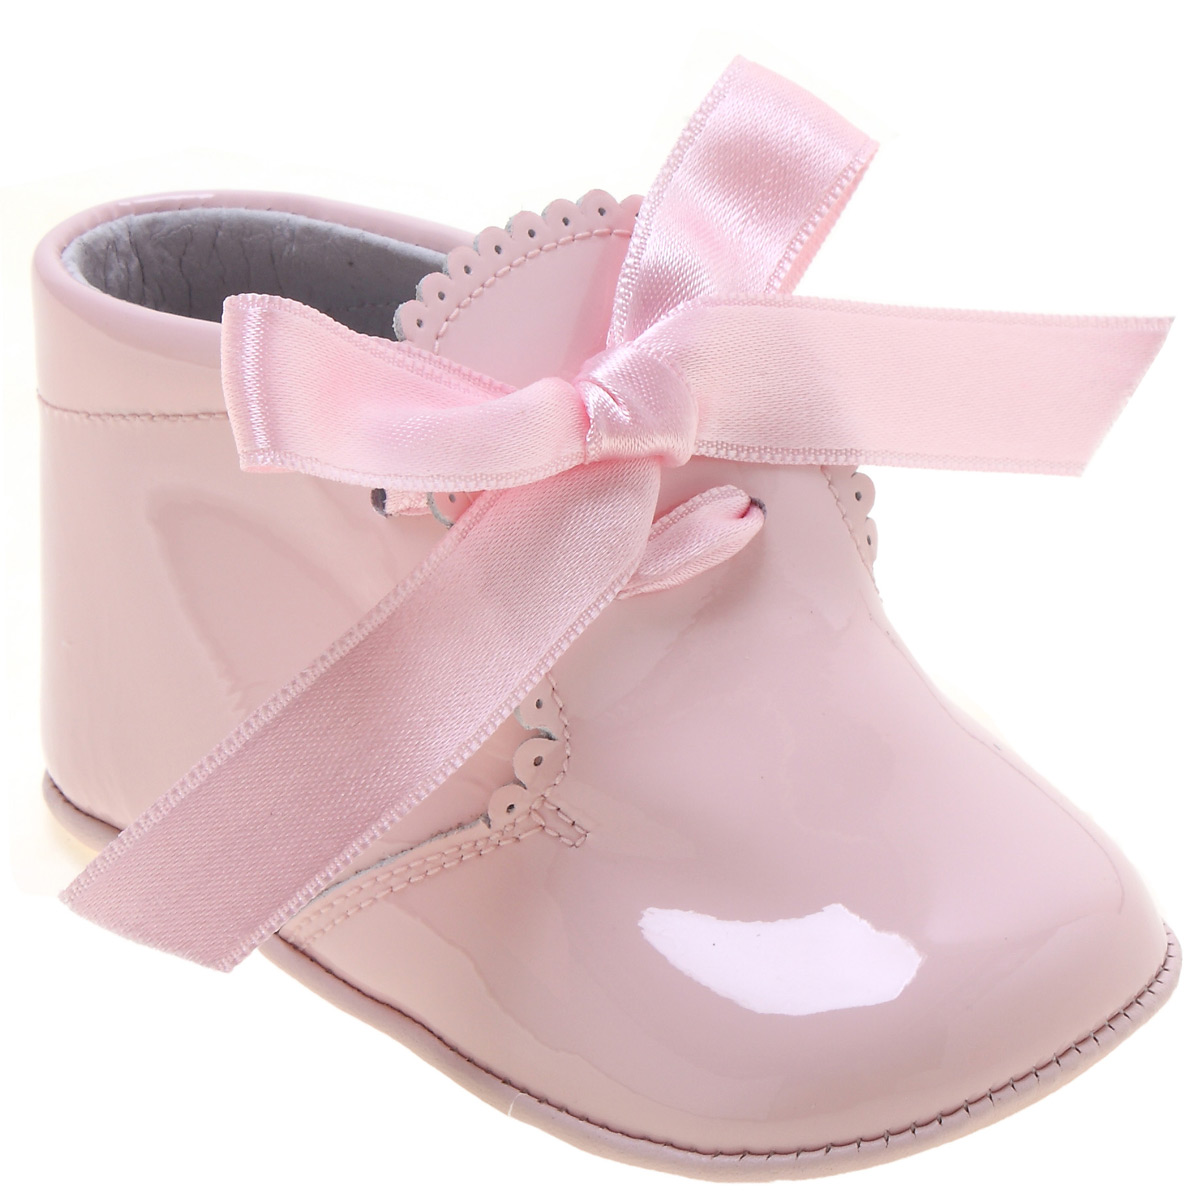 979e55afe1063 Baby Girls Pink Pram Boots With Ribbons. Double tap to zoom